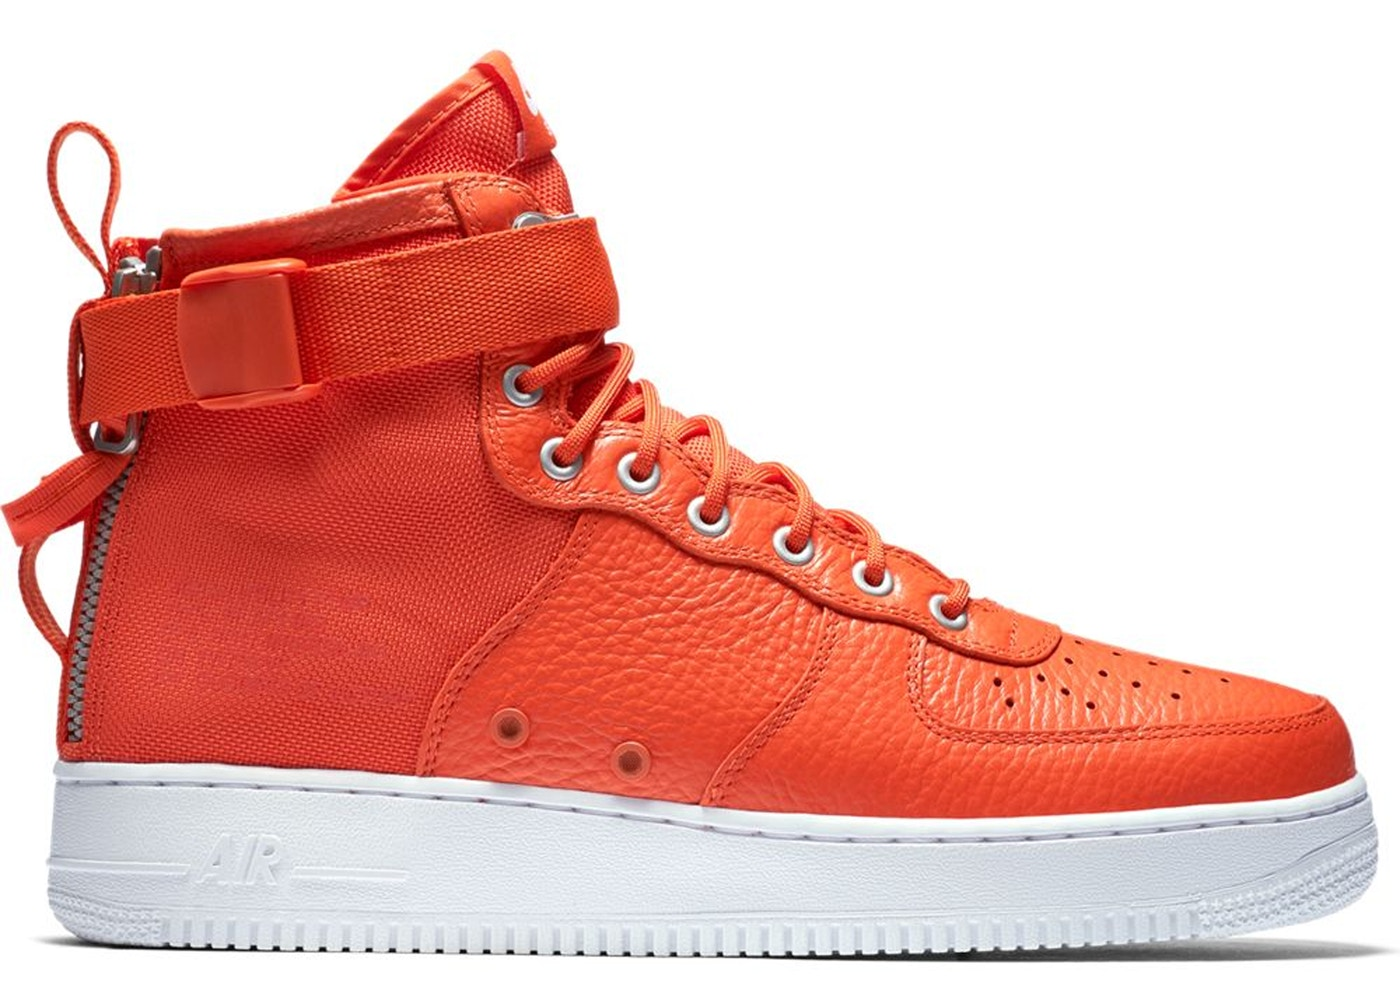 promo code 4c2d5 3e9db SF Air Force 1 Mid Team Orange - 917753-800